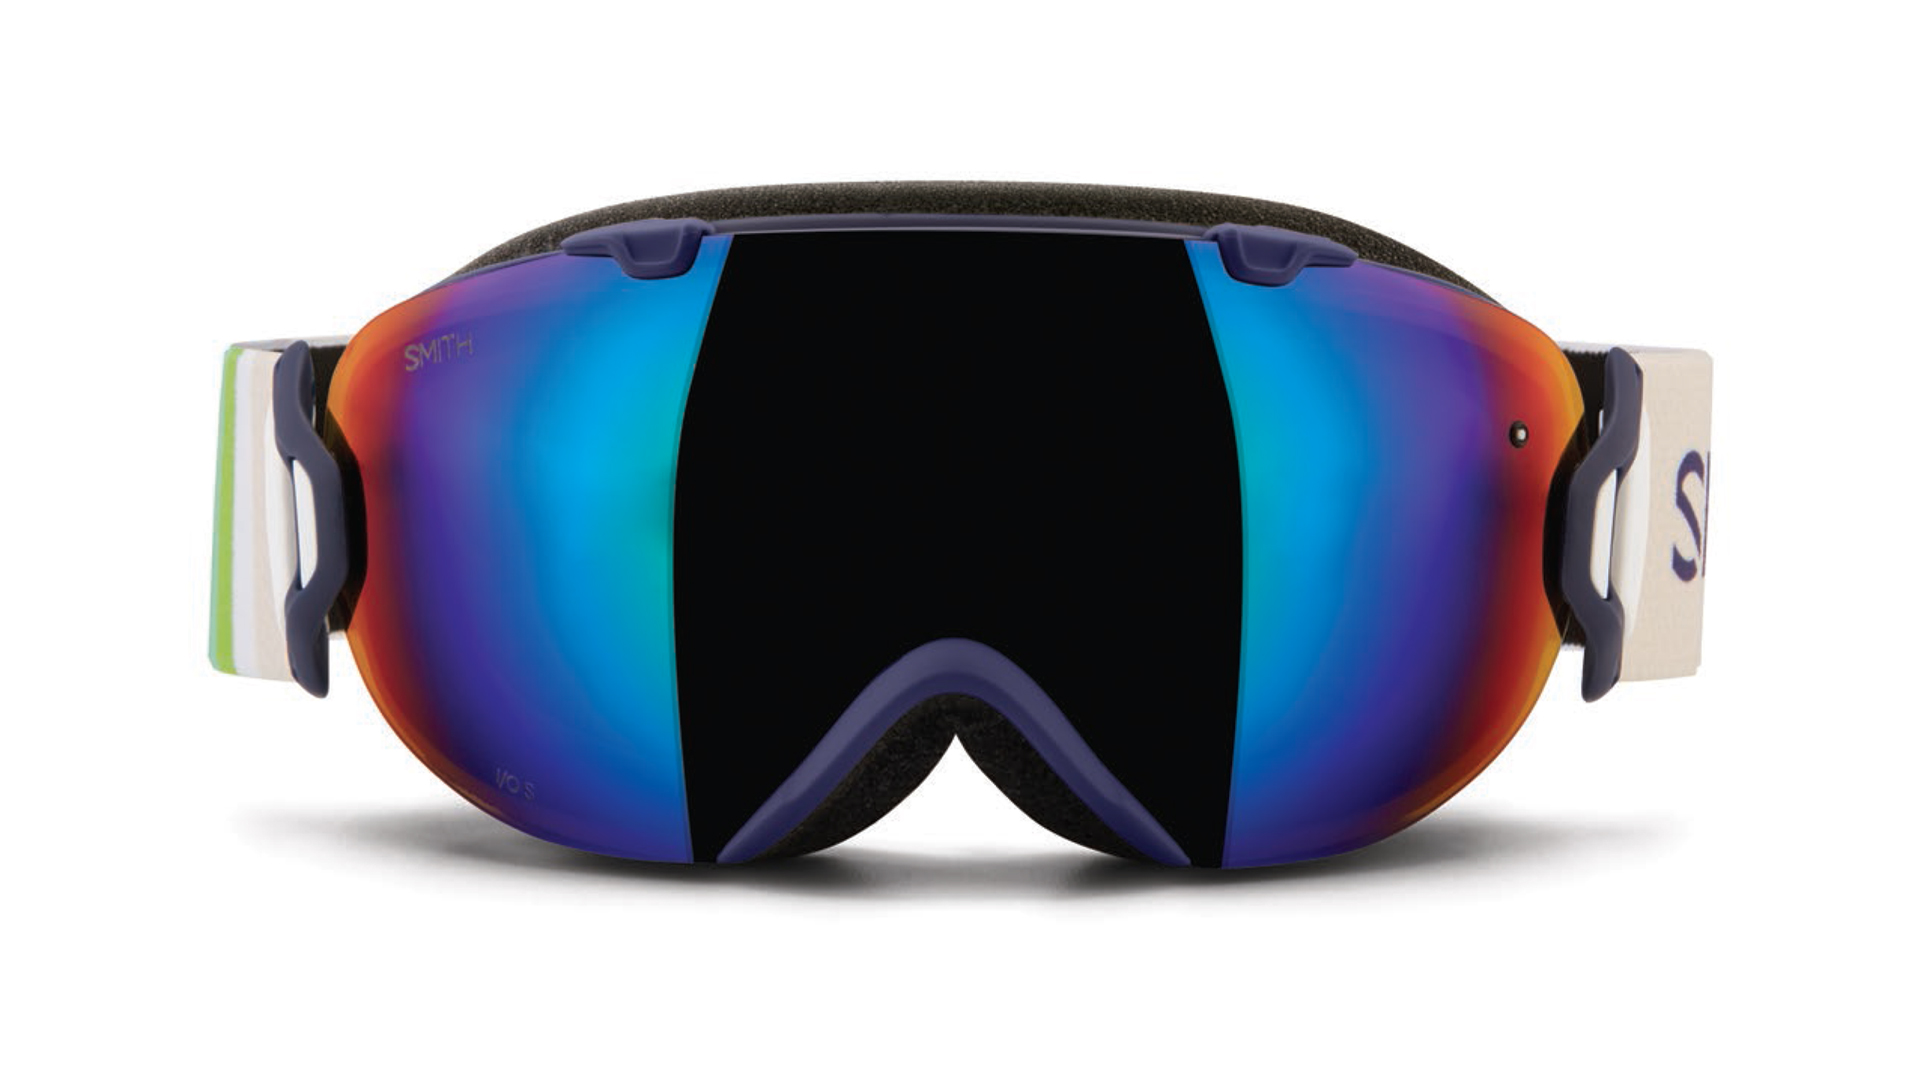 Smith IOS Goggles, Best Smith Goggles 2017